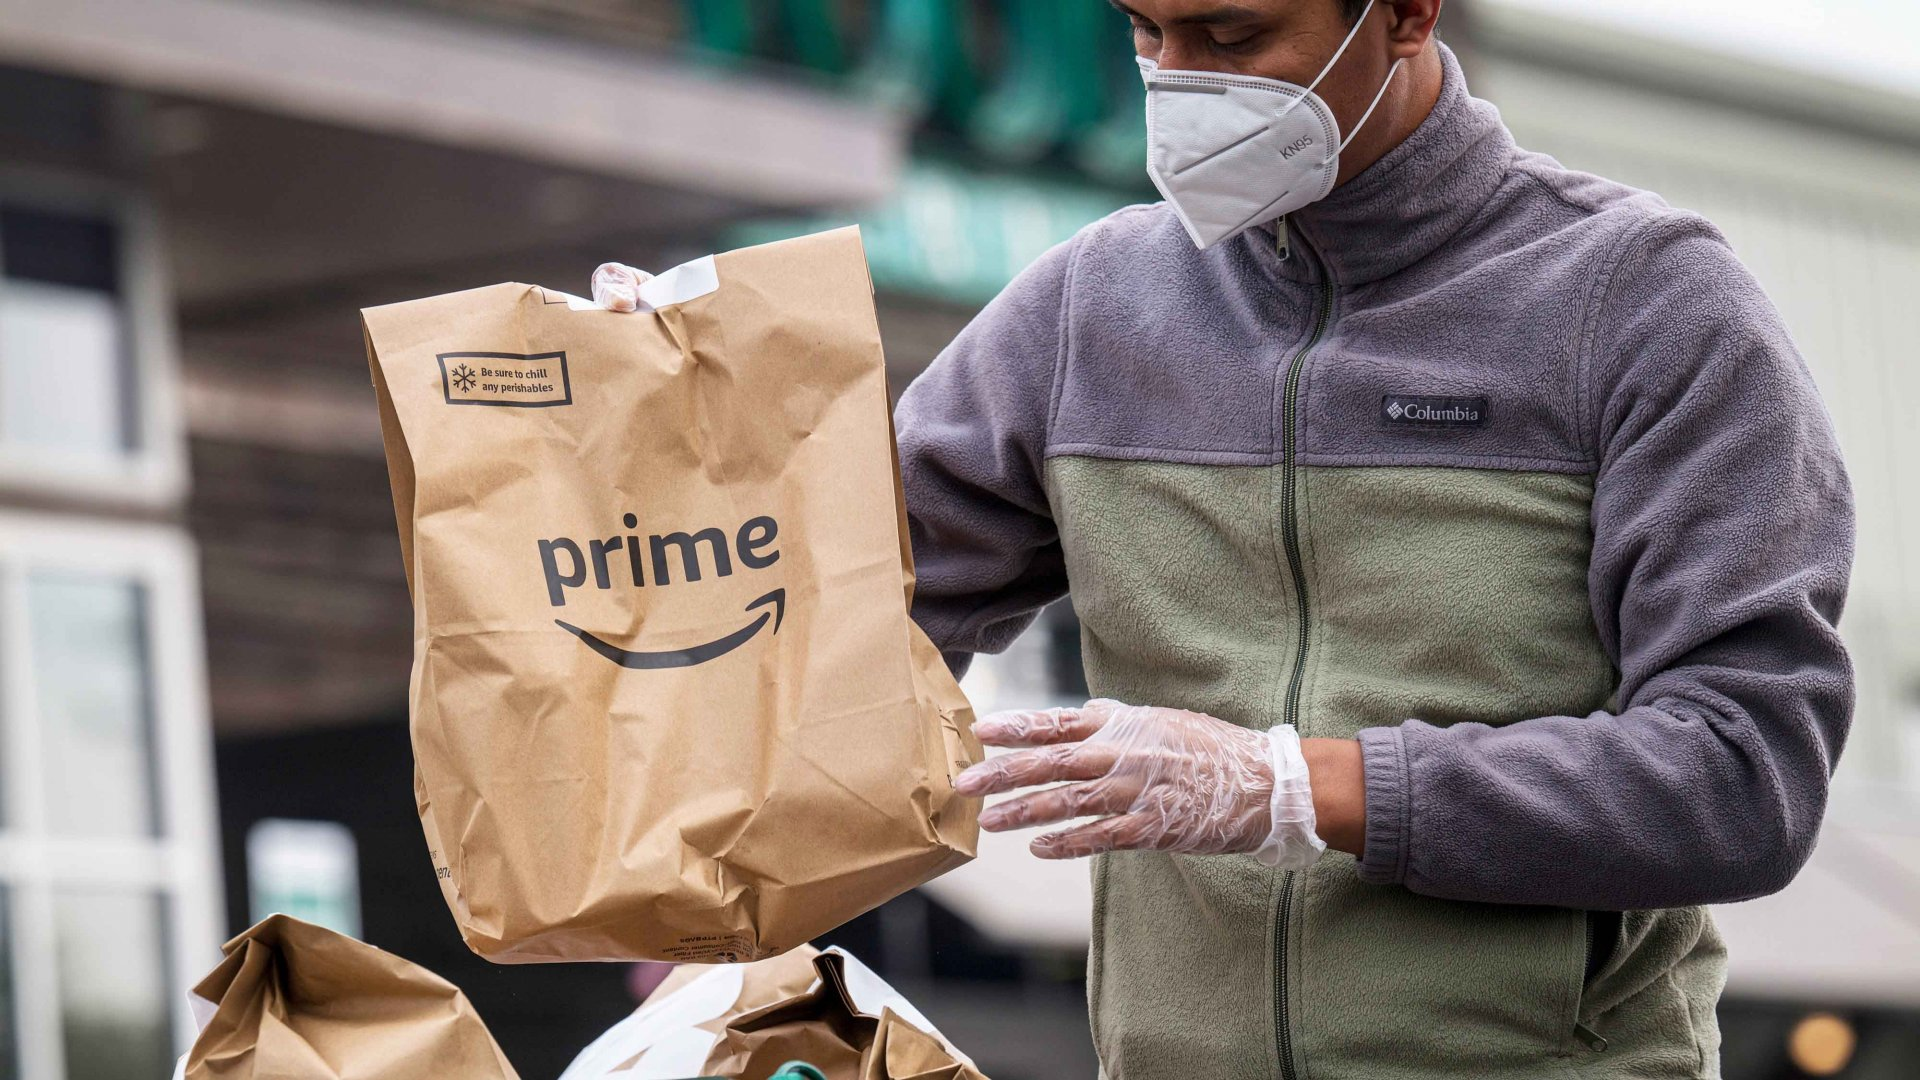 An independent contractor loads Amazon Prime grocery bags into a car outside a Whole Foods Market in Berkeley, California.